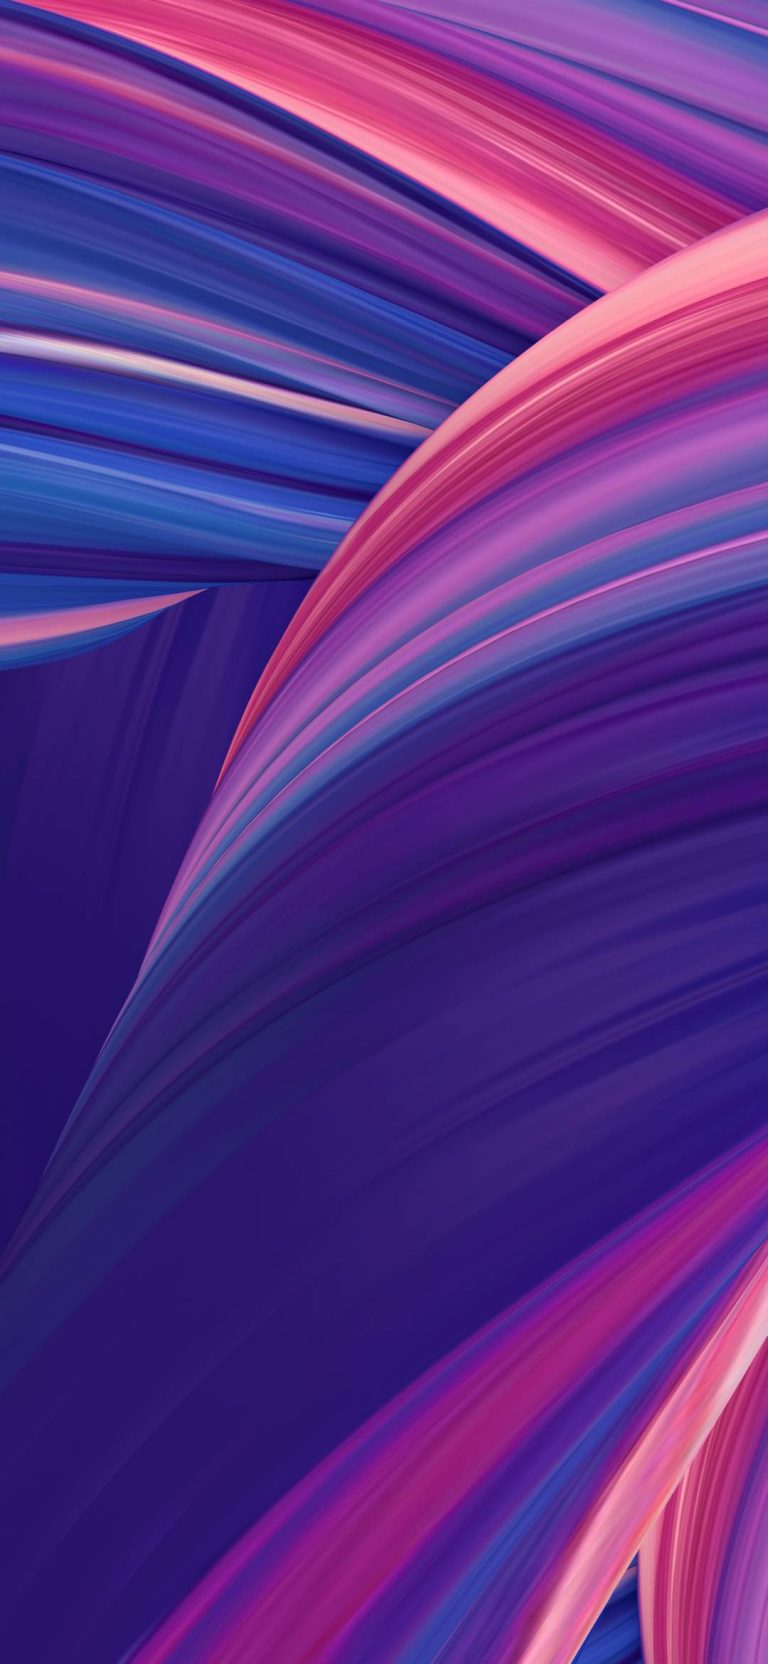 Oppo R17 Stock Wallpaper 01 1080x2340 768x1664